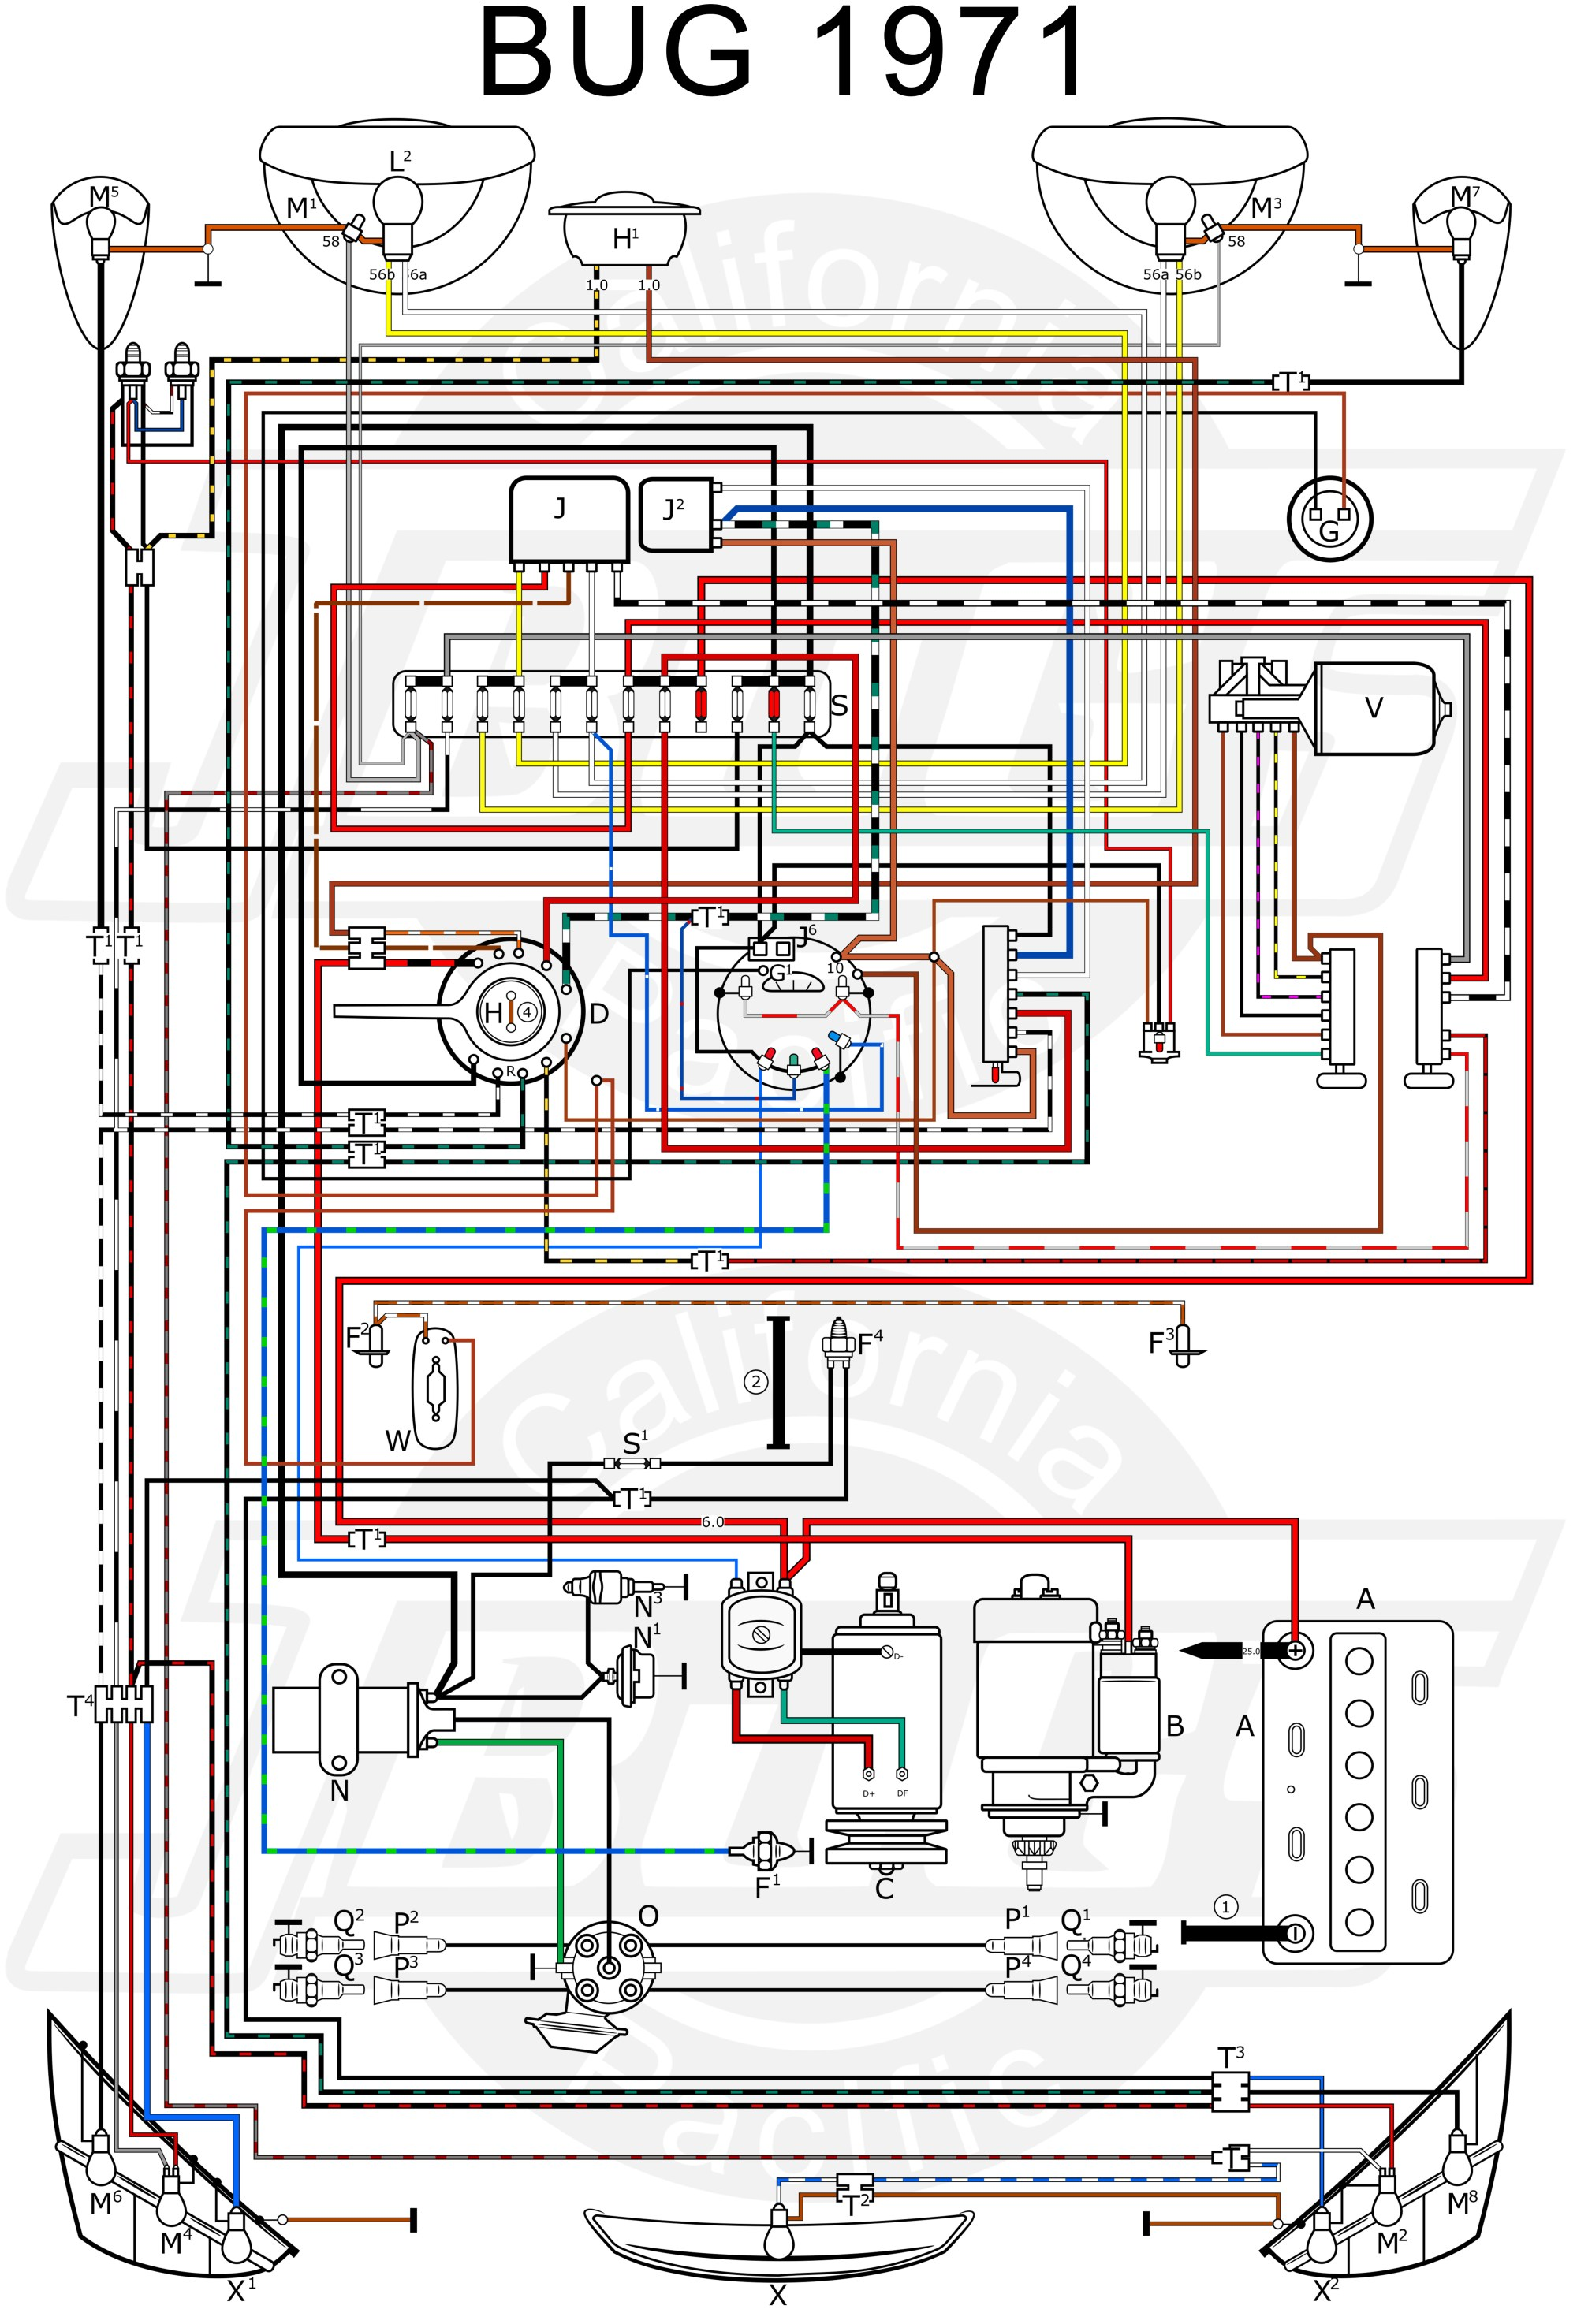 hight resolution of volkswagen cabrio wiring diagram wiring diagram h81999 volkswagen cabrio wiring diagram wiring library diagram z2 toyota